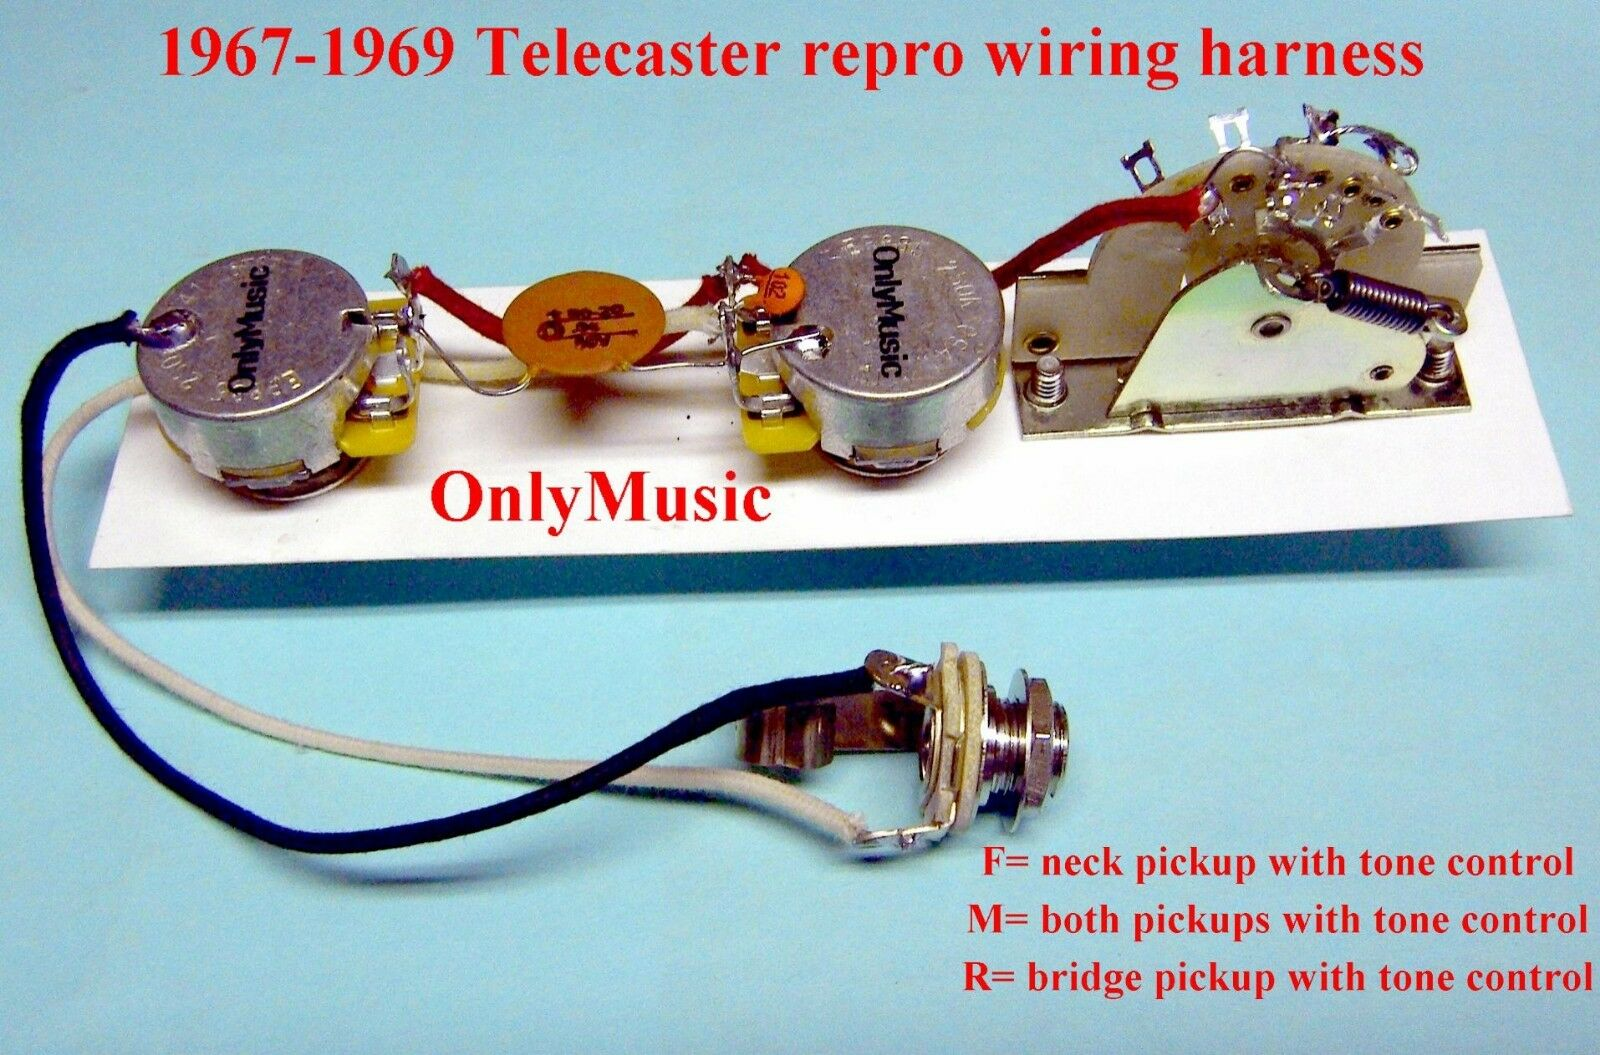 COMPATIBLE TO FENDER TELECASTER 1967 1969 REPRODUCTION VINTAGE WIRING HARNESS